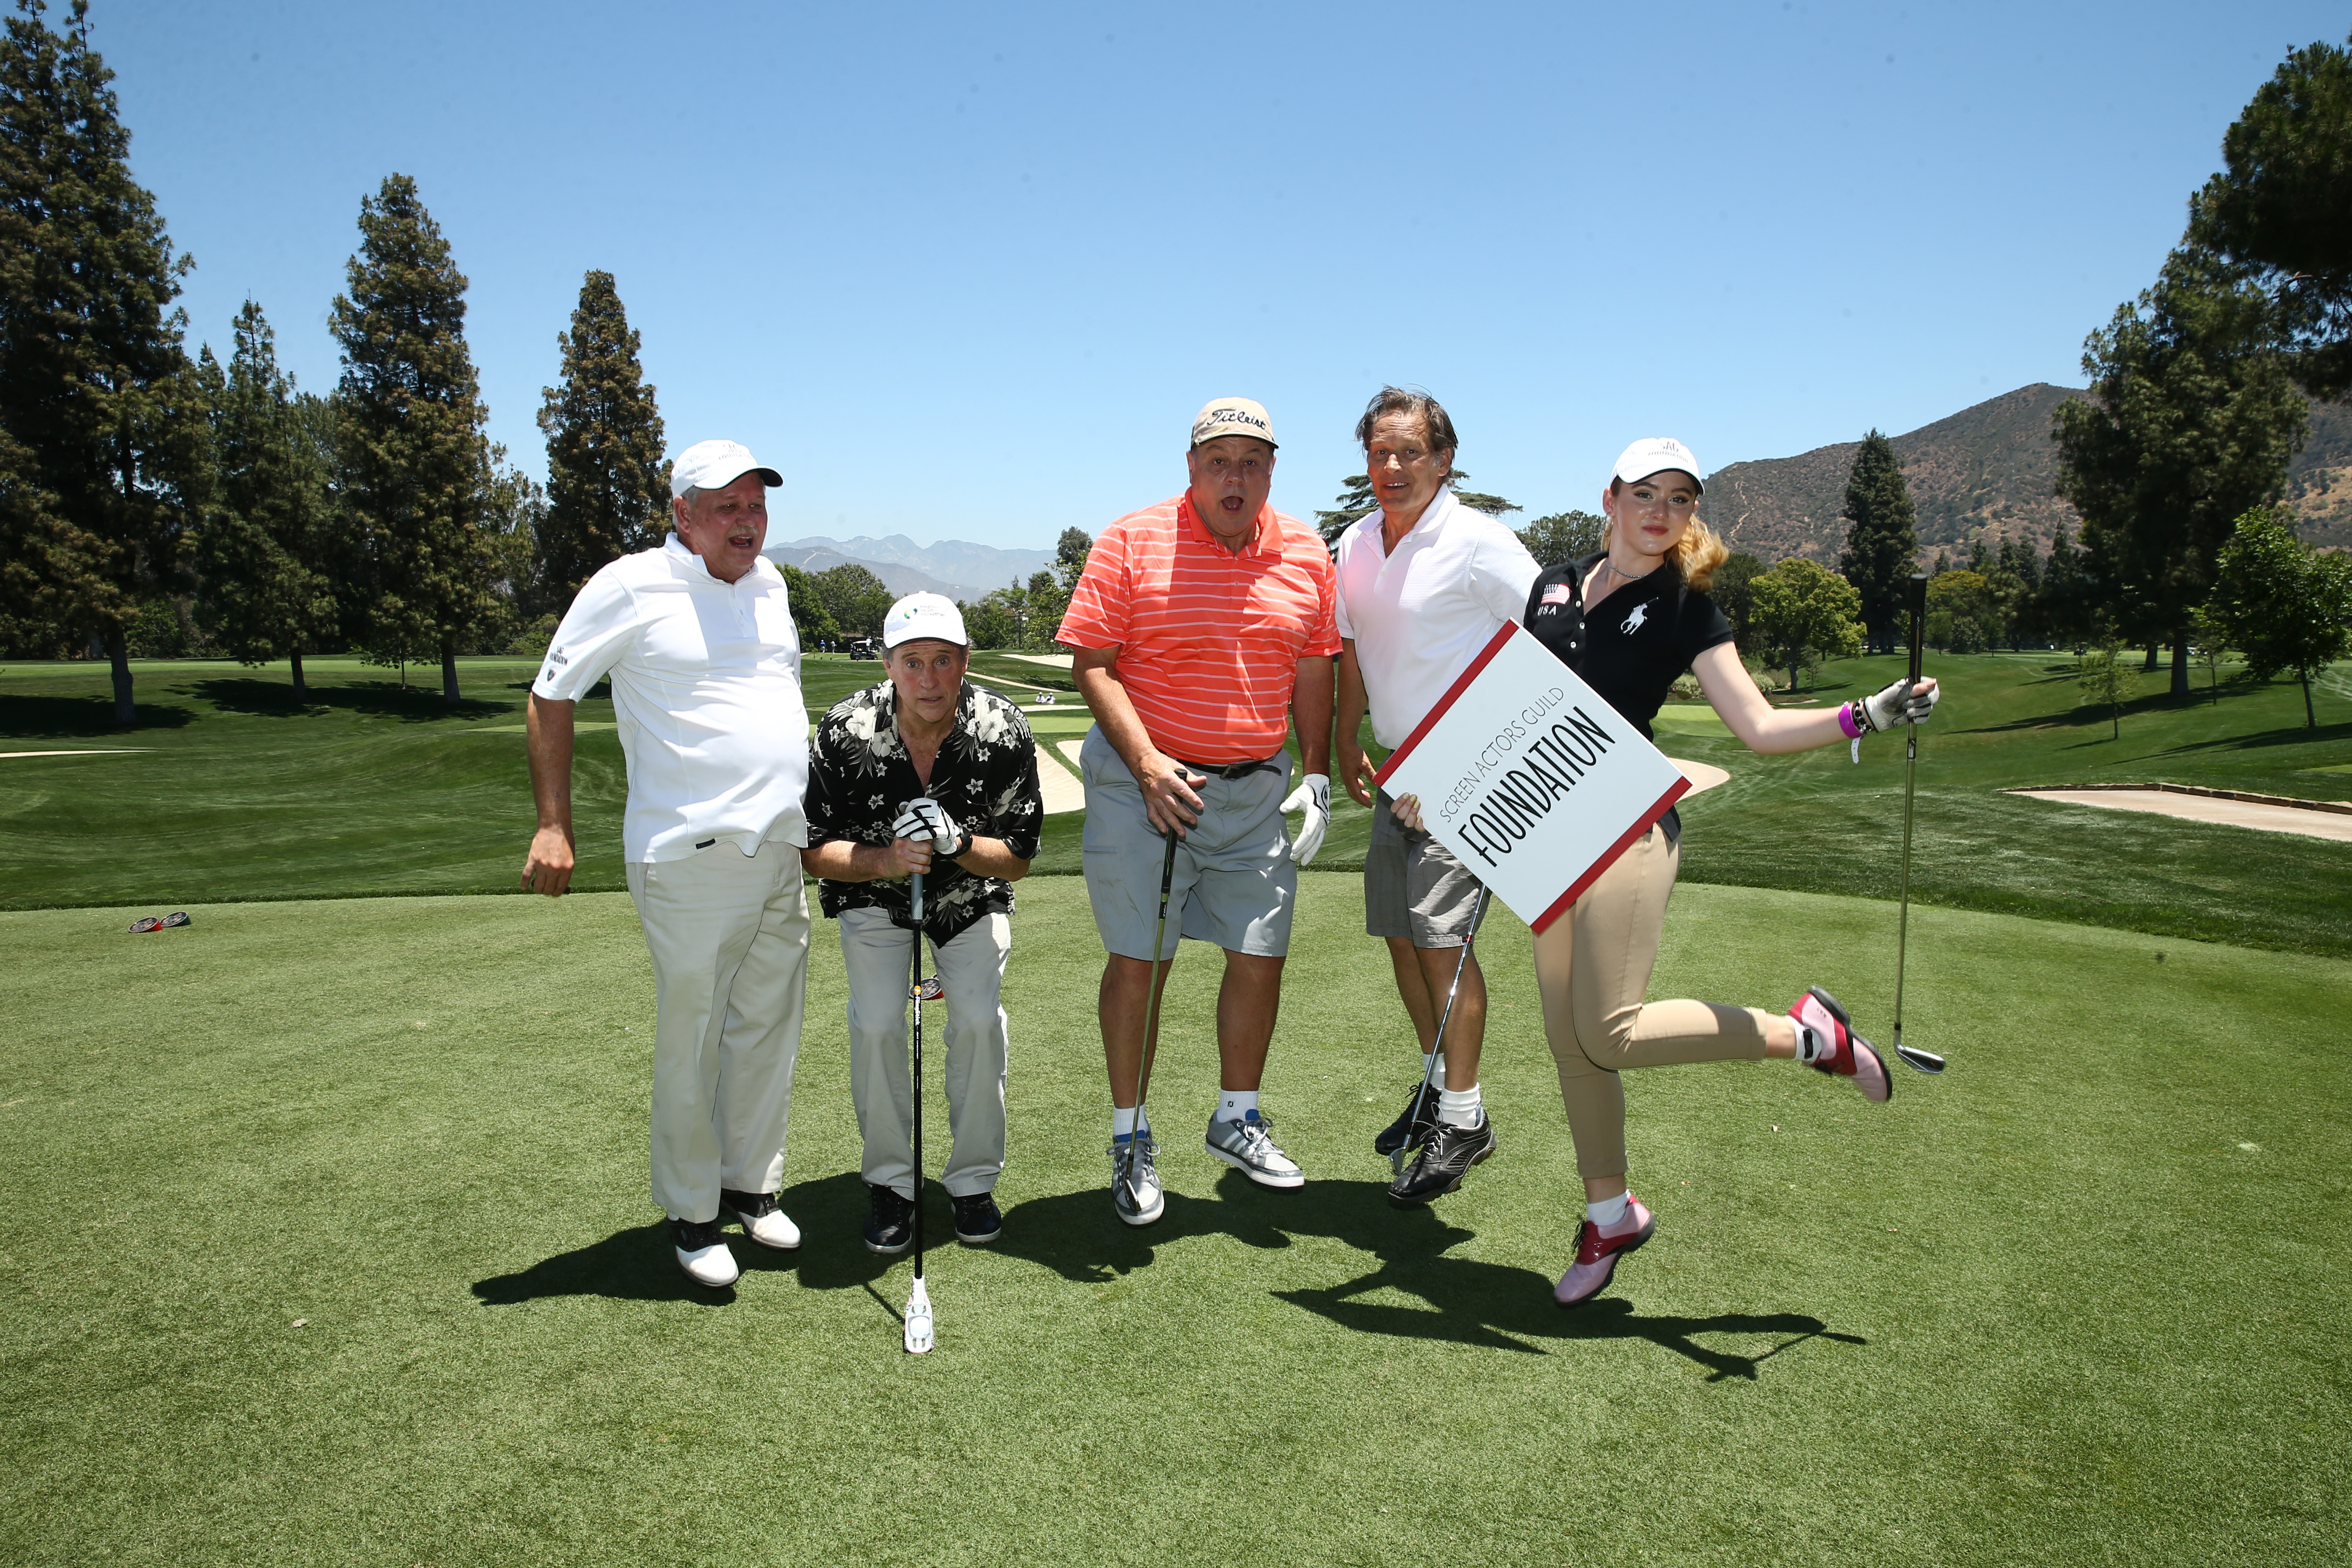 Dave Hutton, Robert Hays, Michael Ironside, James Remar and Kathryn Newton of Team SAG Foundation play at the Screen Actors Guild Foundation's 6th Annual Los Angeles Golf Classic on June 8, 2015 in Burbank, California. (Photo by Mark Davis/Getty Images for The Screen Actors Guild Foundation)